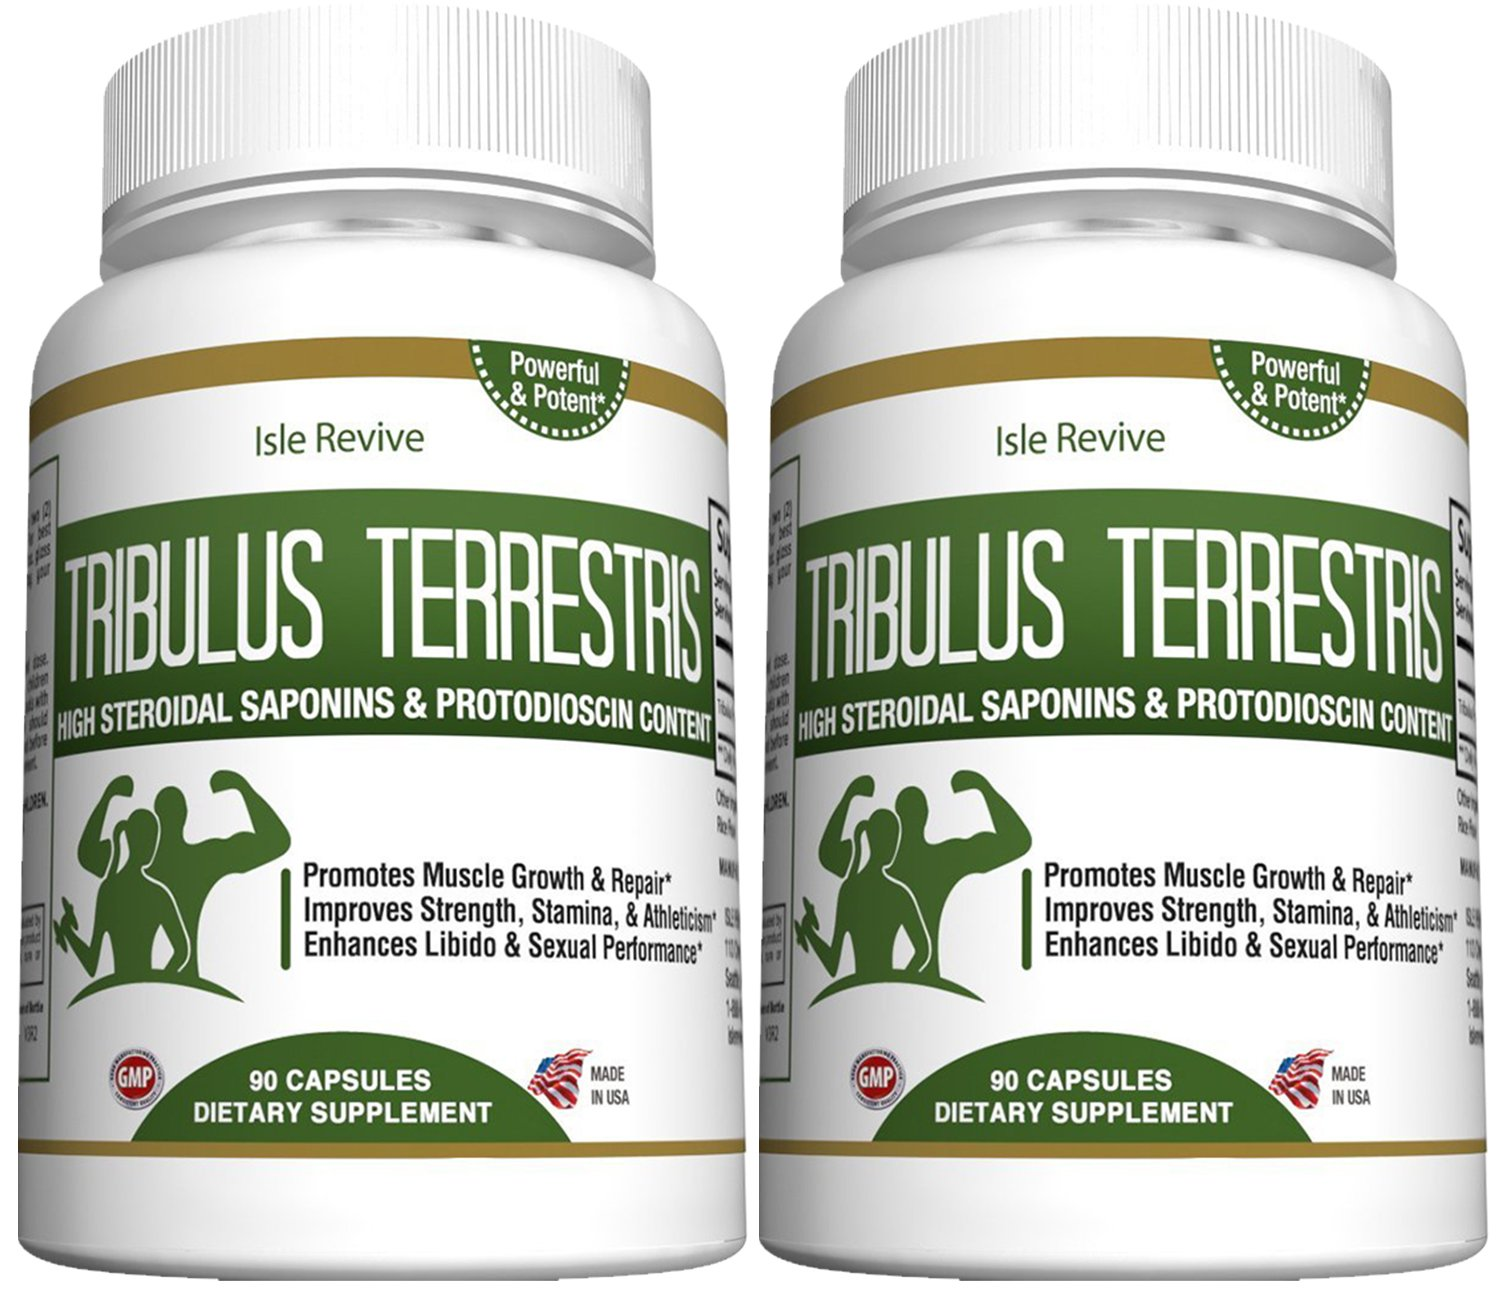 Tribulus Terrestris Testosterone Booster Capsules - Muscle Building Endurance Energy Enhancer Weight Loss 2 Bottles 90 Capsules Made in USA